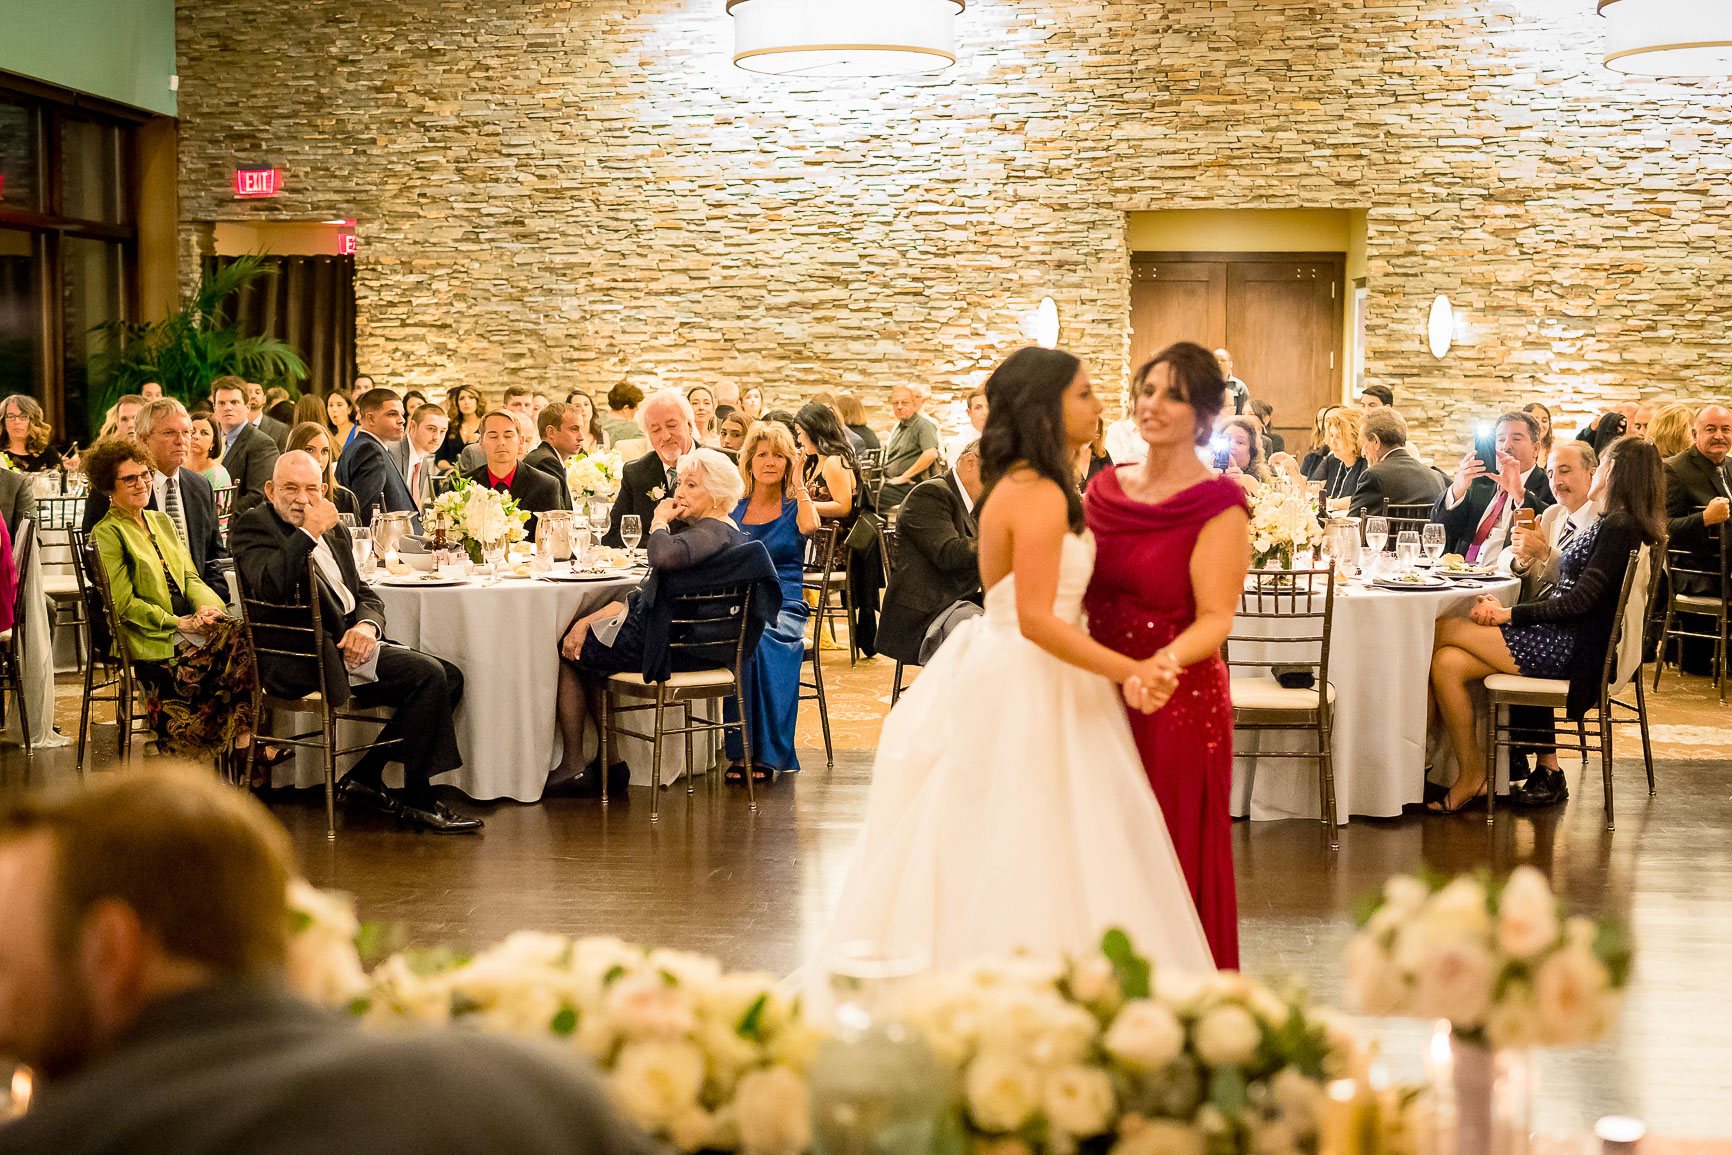 298-Alexa-Bryan-Wedding.jpg